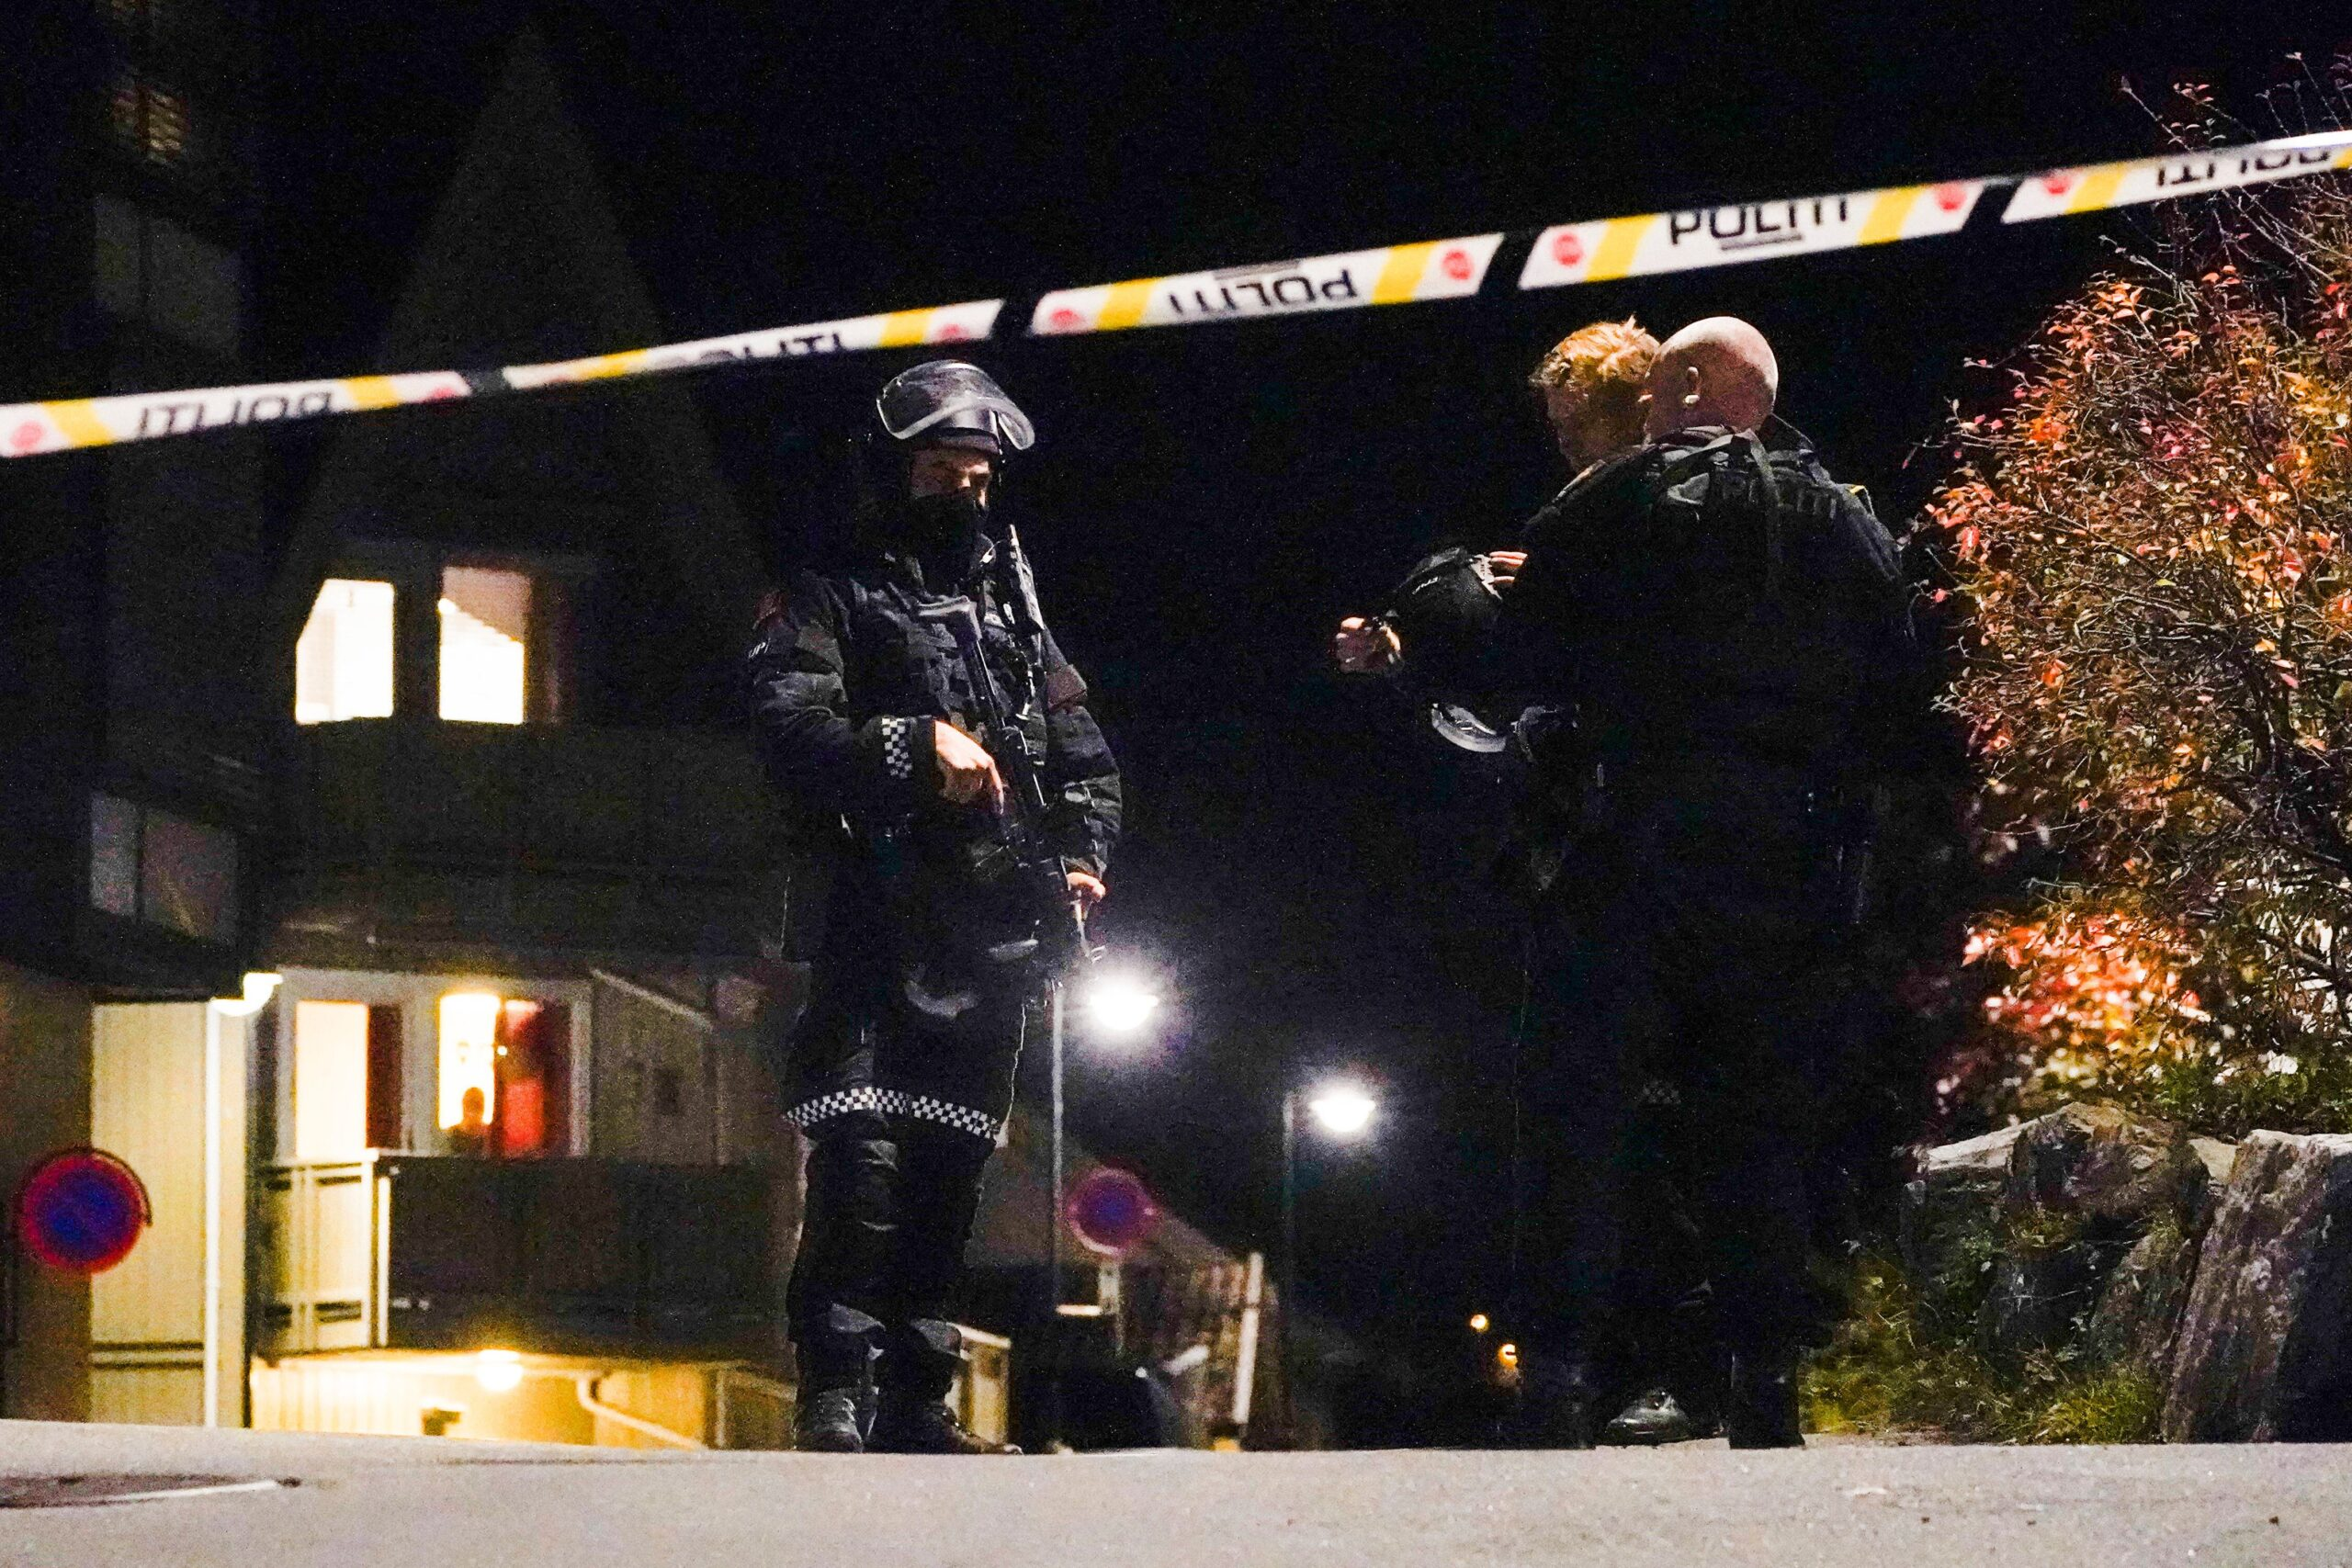 <i>Hakon Mosvold Larsen/NTB/AFP/Getty Images</i><br/>The suspect in the Norway bow-and-arrow attack had converted to Islam and police were in contact with him before the killings on Wednesday over concerns about radicalization